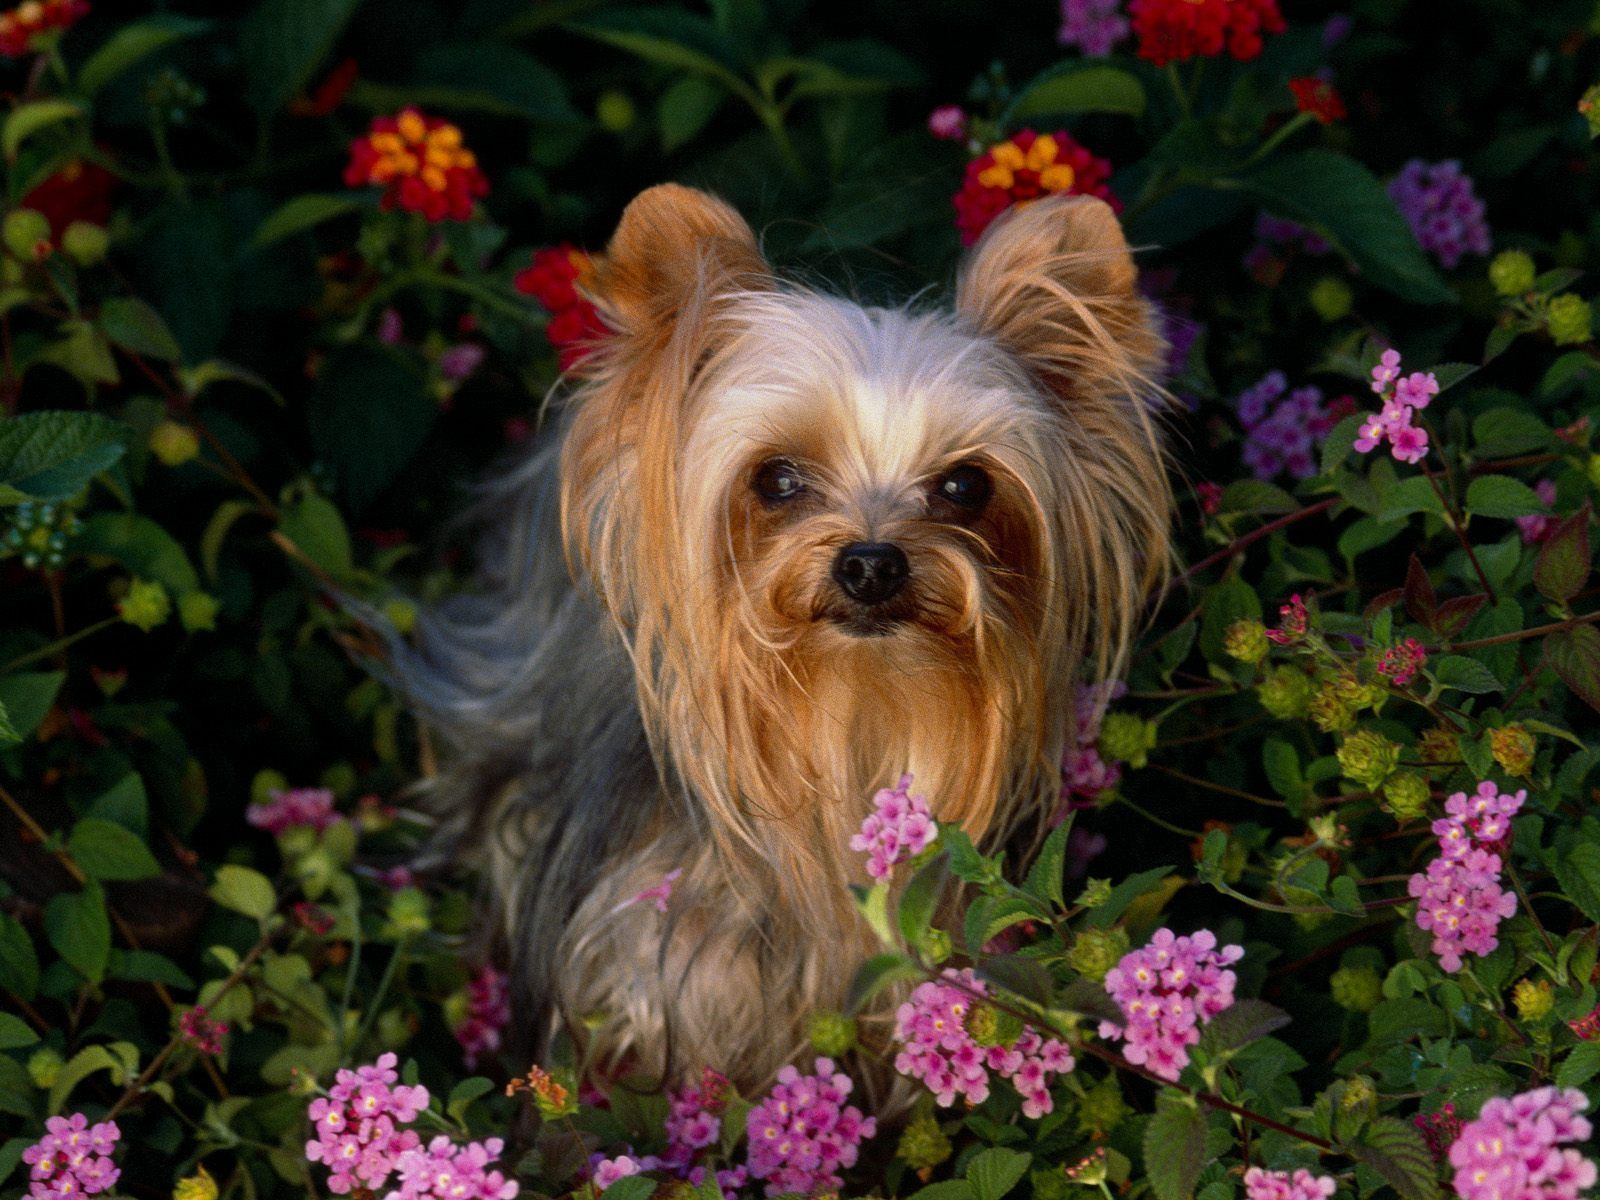 Details About Yorkshire Terrier Yorkie Dog 8 X 10 8x10 Glossy Photo Picture Yorkshire Terrier Dog Yorkie Puppy Yorkshire Terrier Puppies